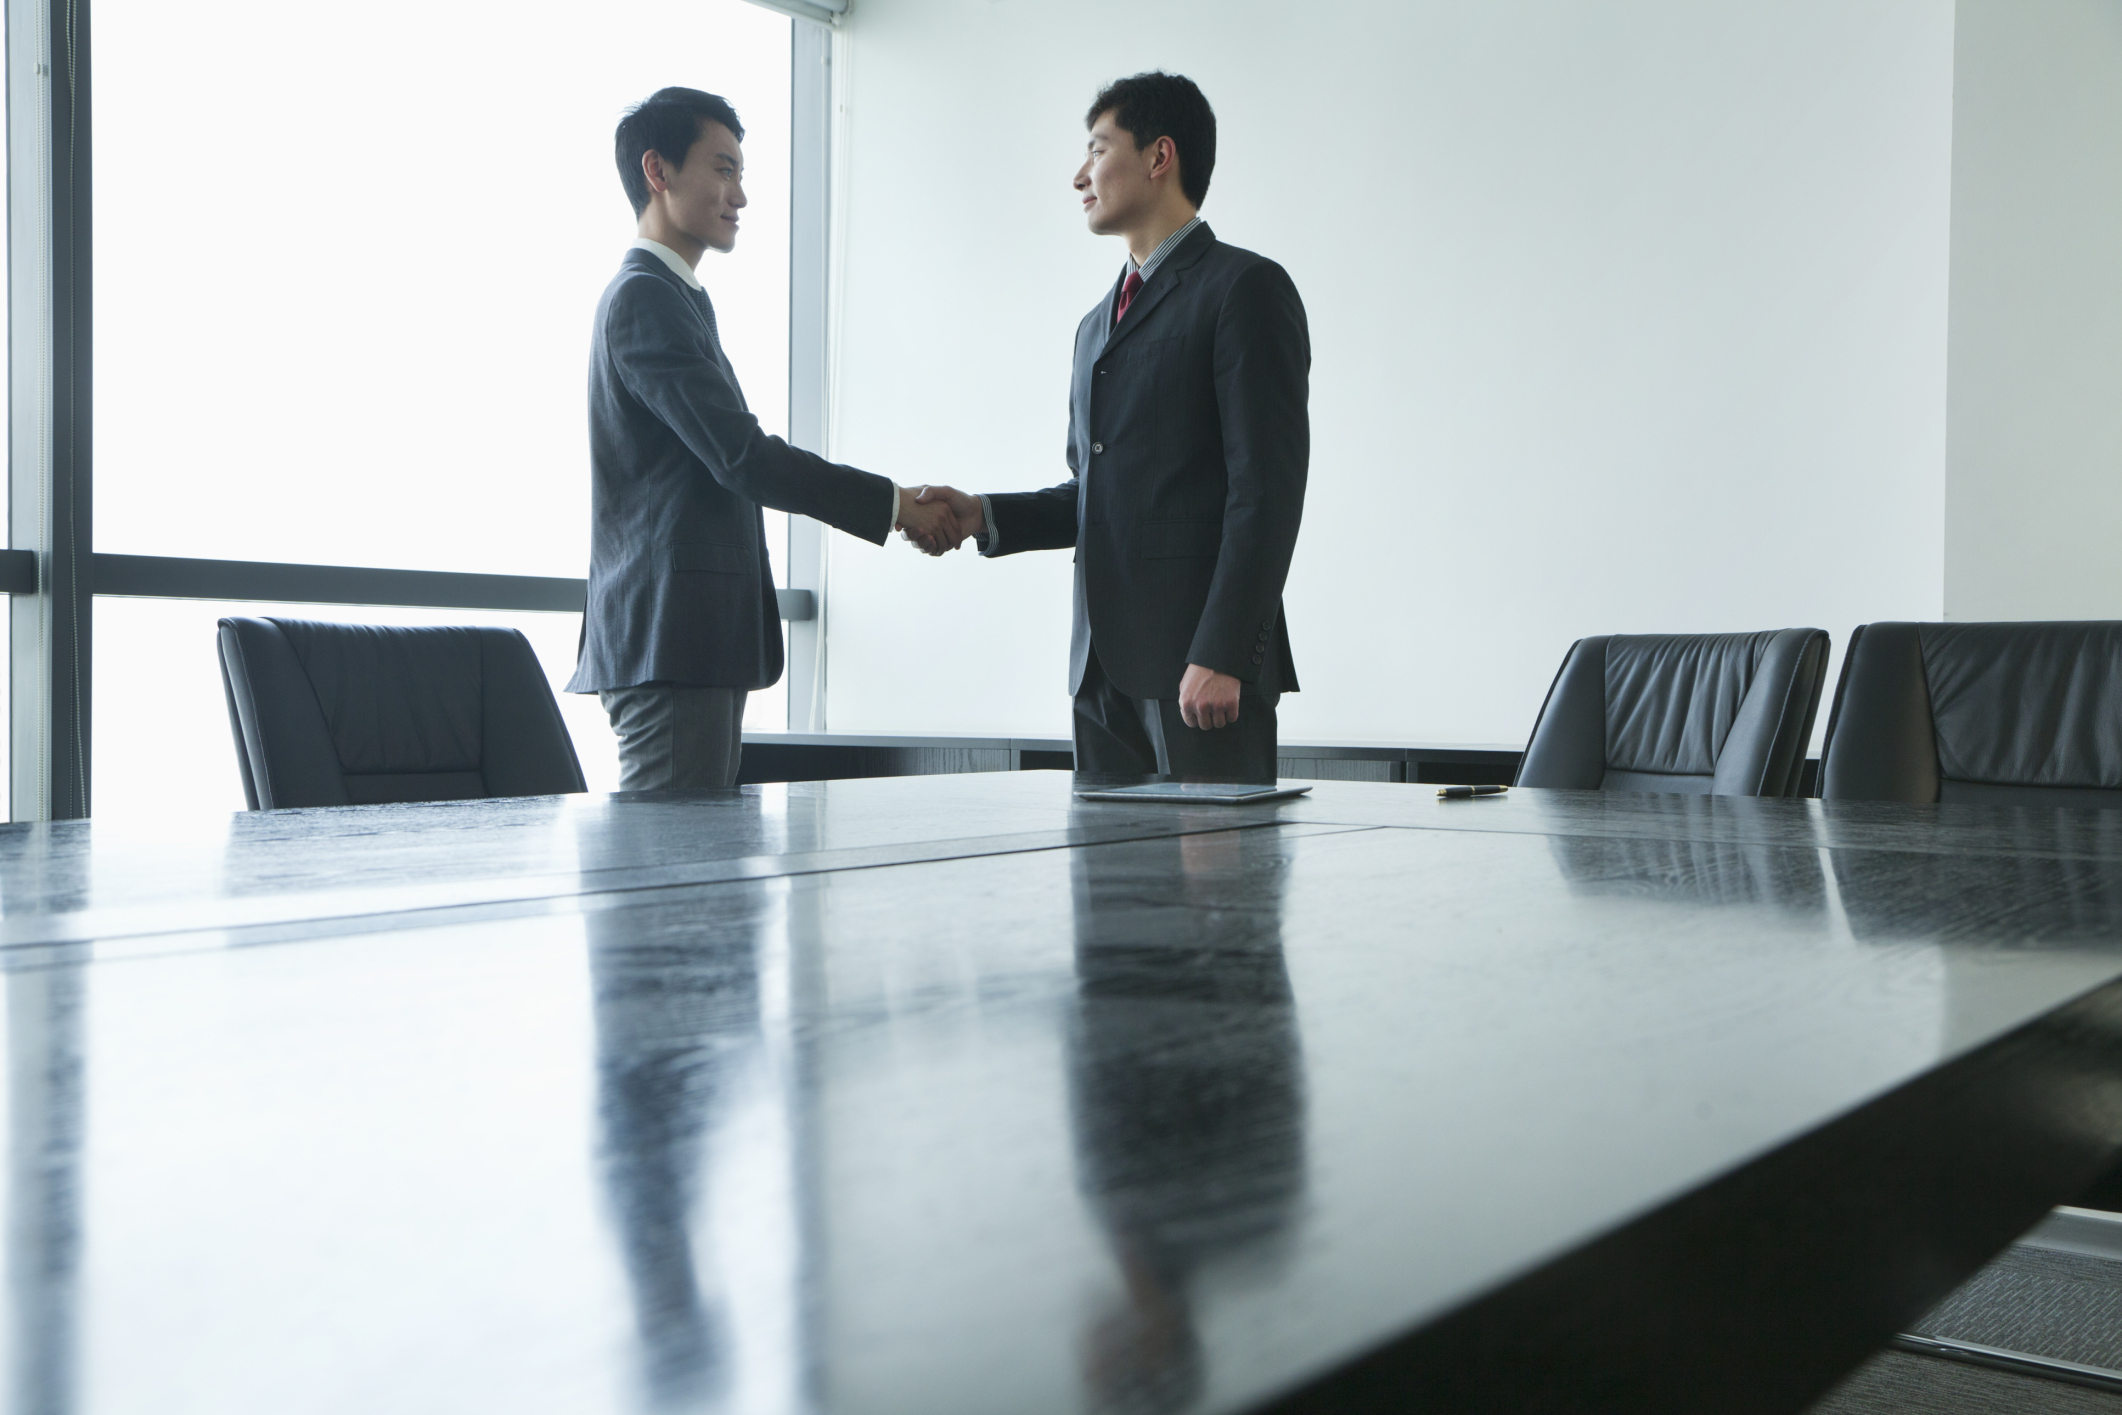 Can Your Business Partner Sell Without Your Consent?   Bizfluent